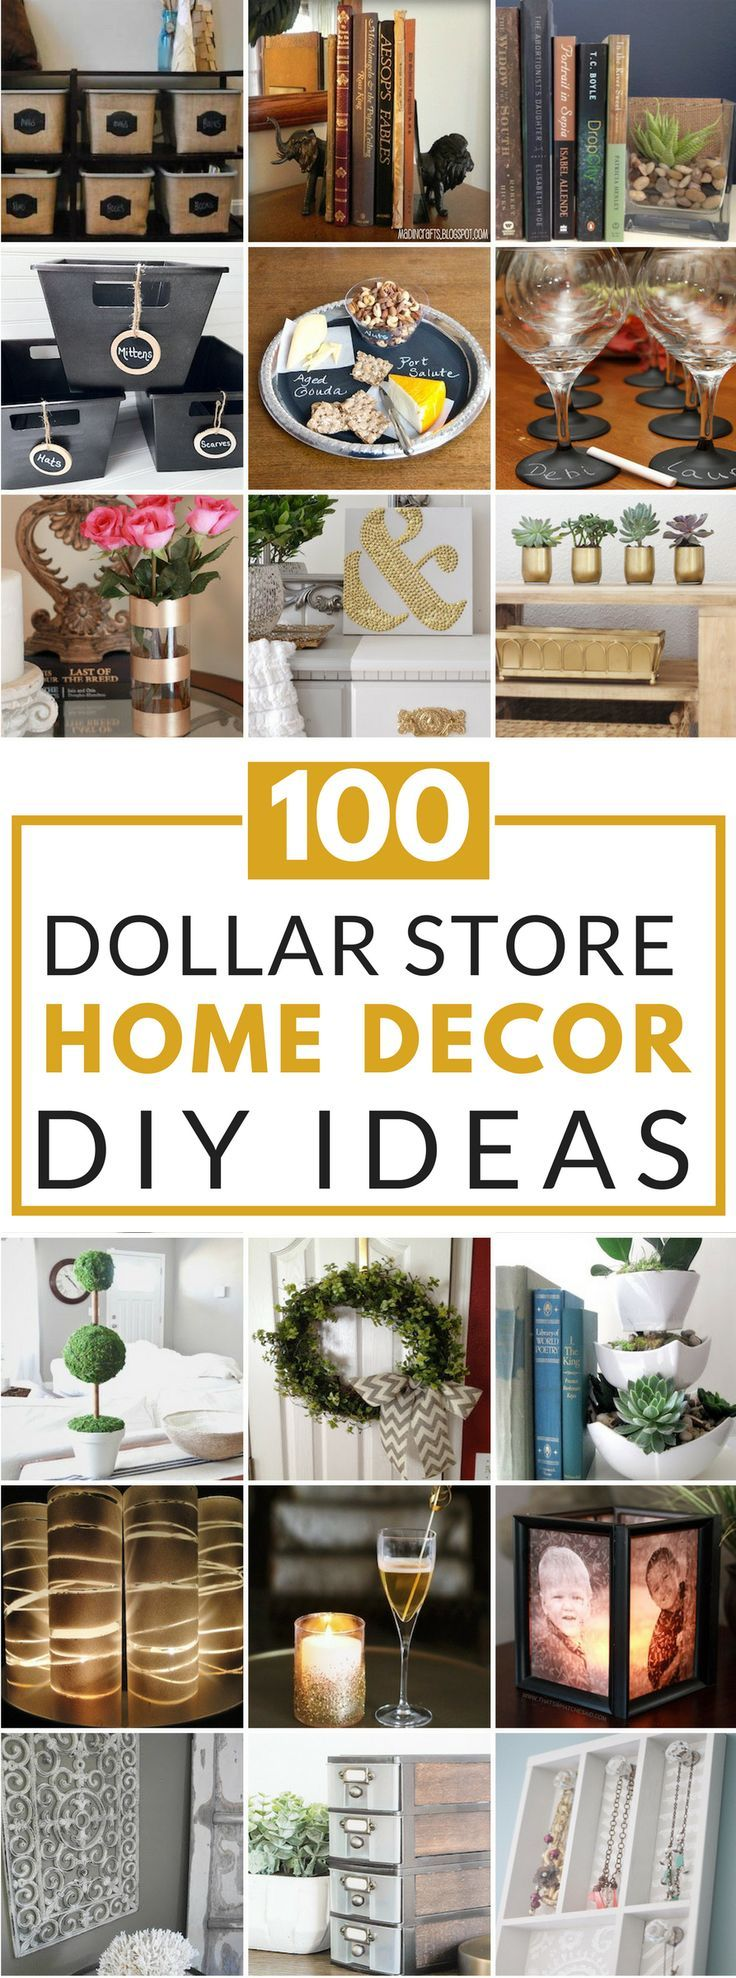 100 dollar store diy home decor ideas diy home decor diy home rh pinterest com